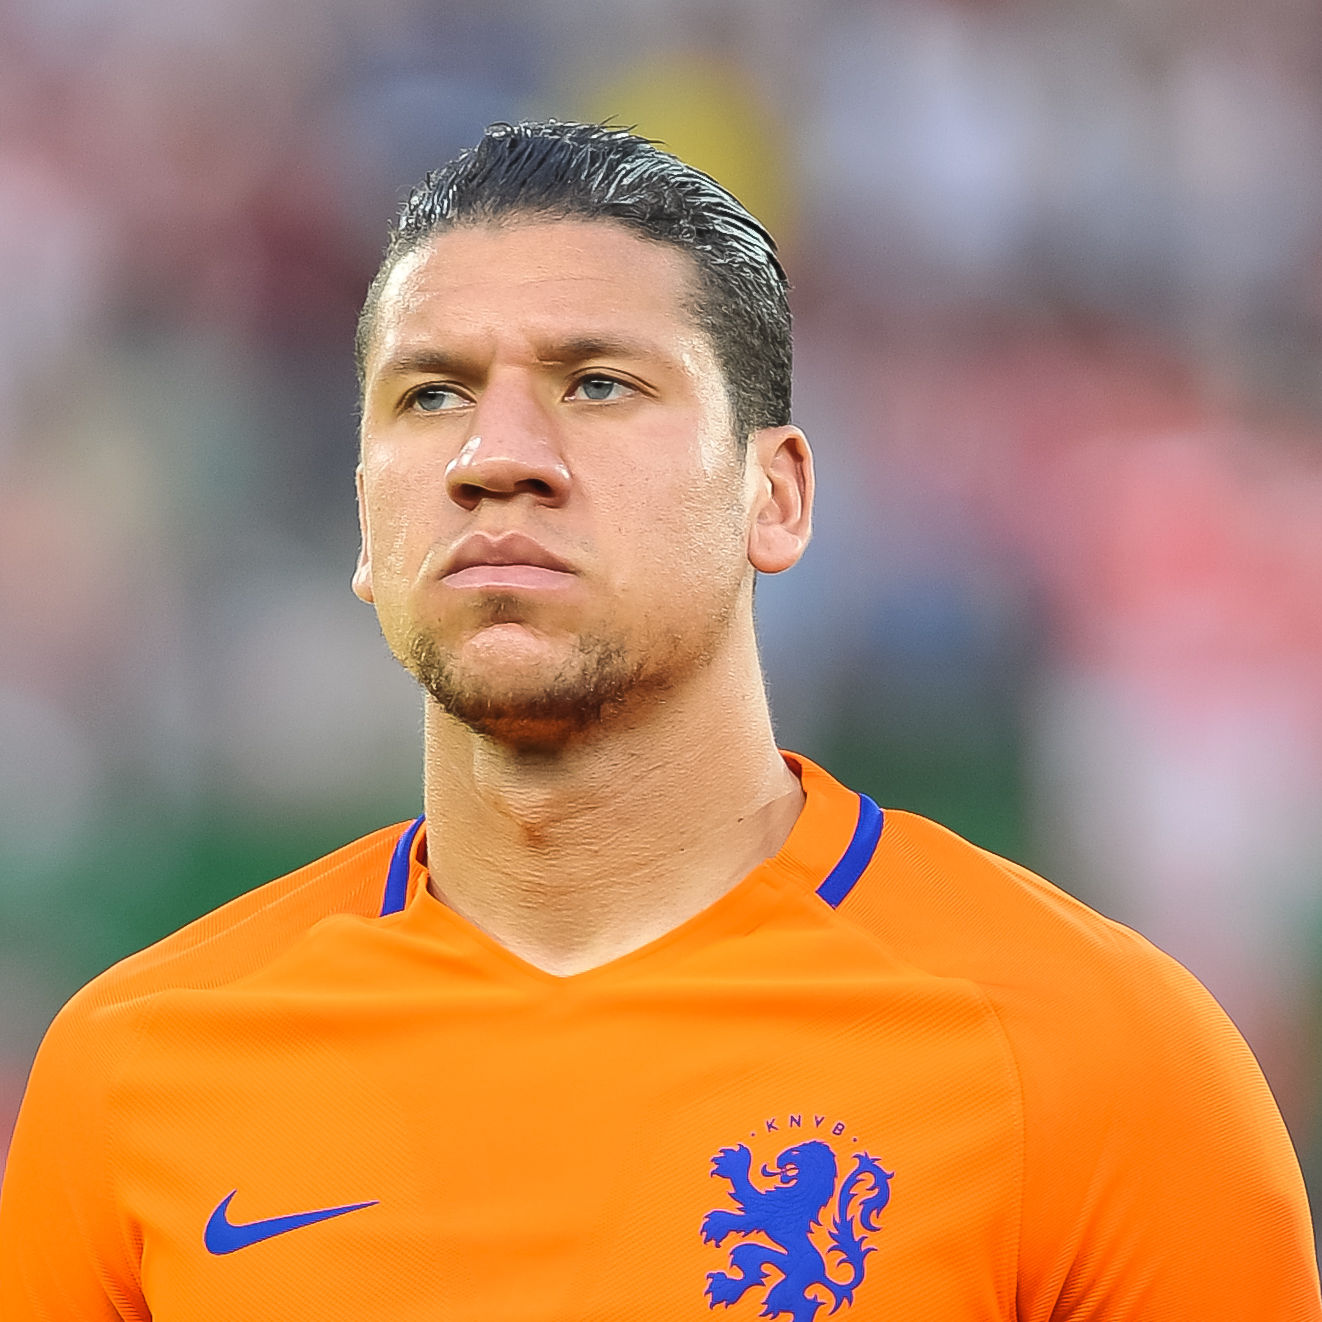 The 28-year old son of father (?) and mother(?) Jeffrey Bruma in 2020 photo. Jeffrey Bruma earned a million dollar salary - leaving the net worth at 4.3 million in 2020